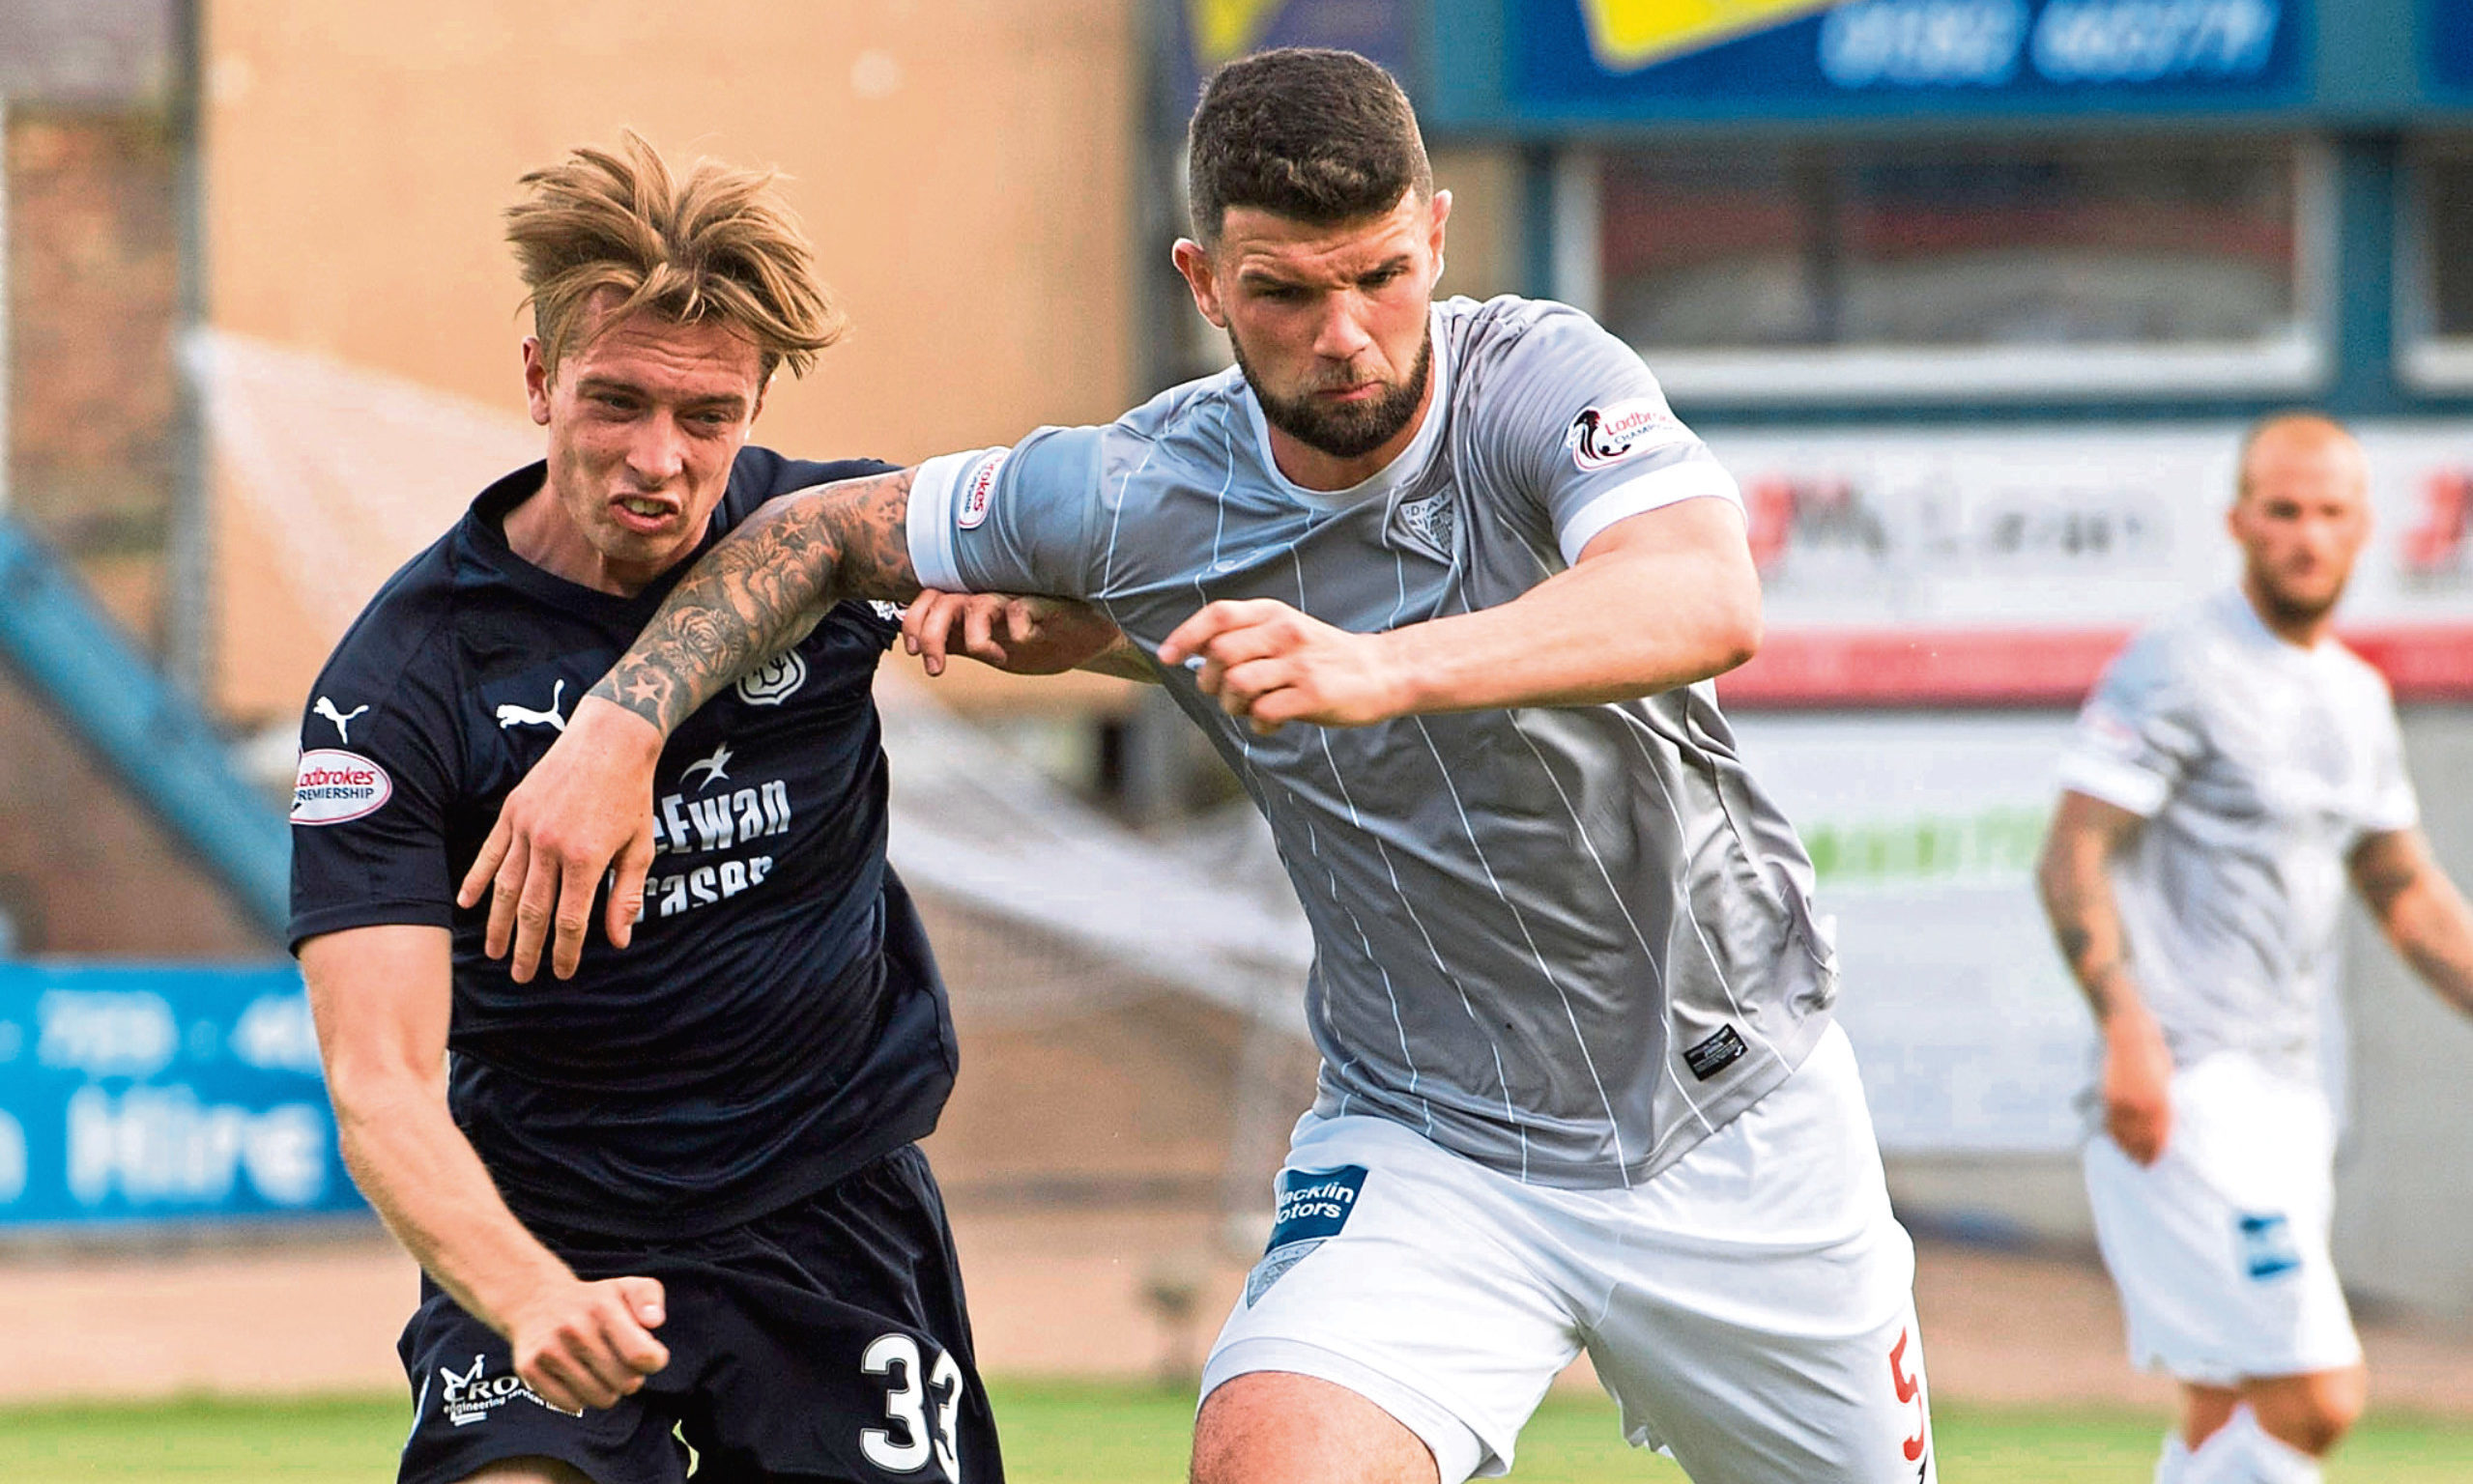 Dunfermline's Mark Durnan (right) and Craig Wighton in action.